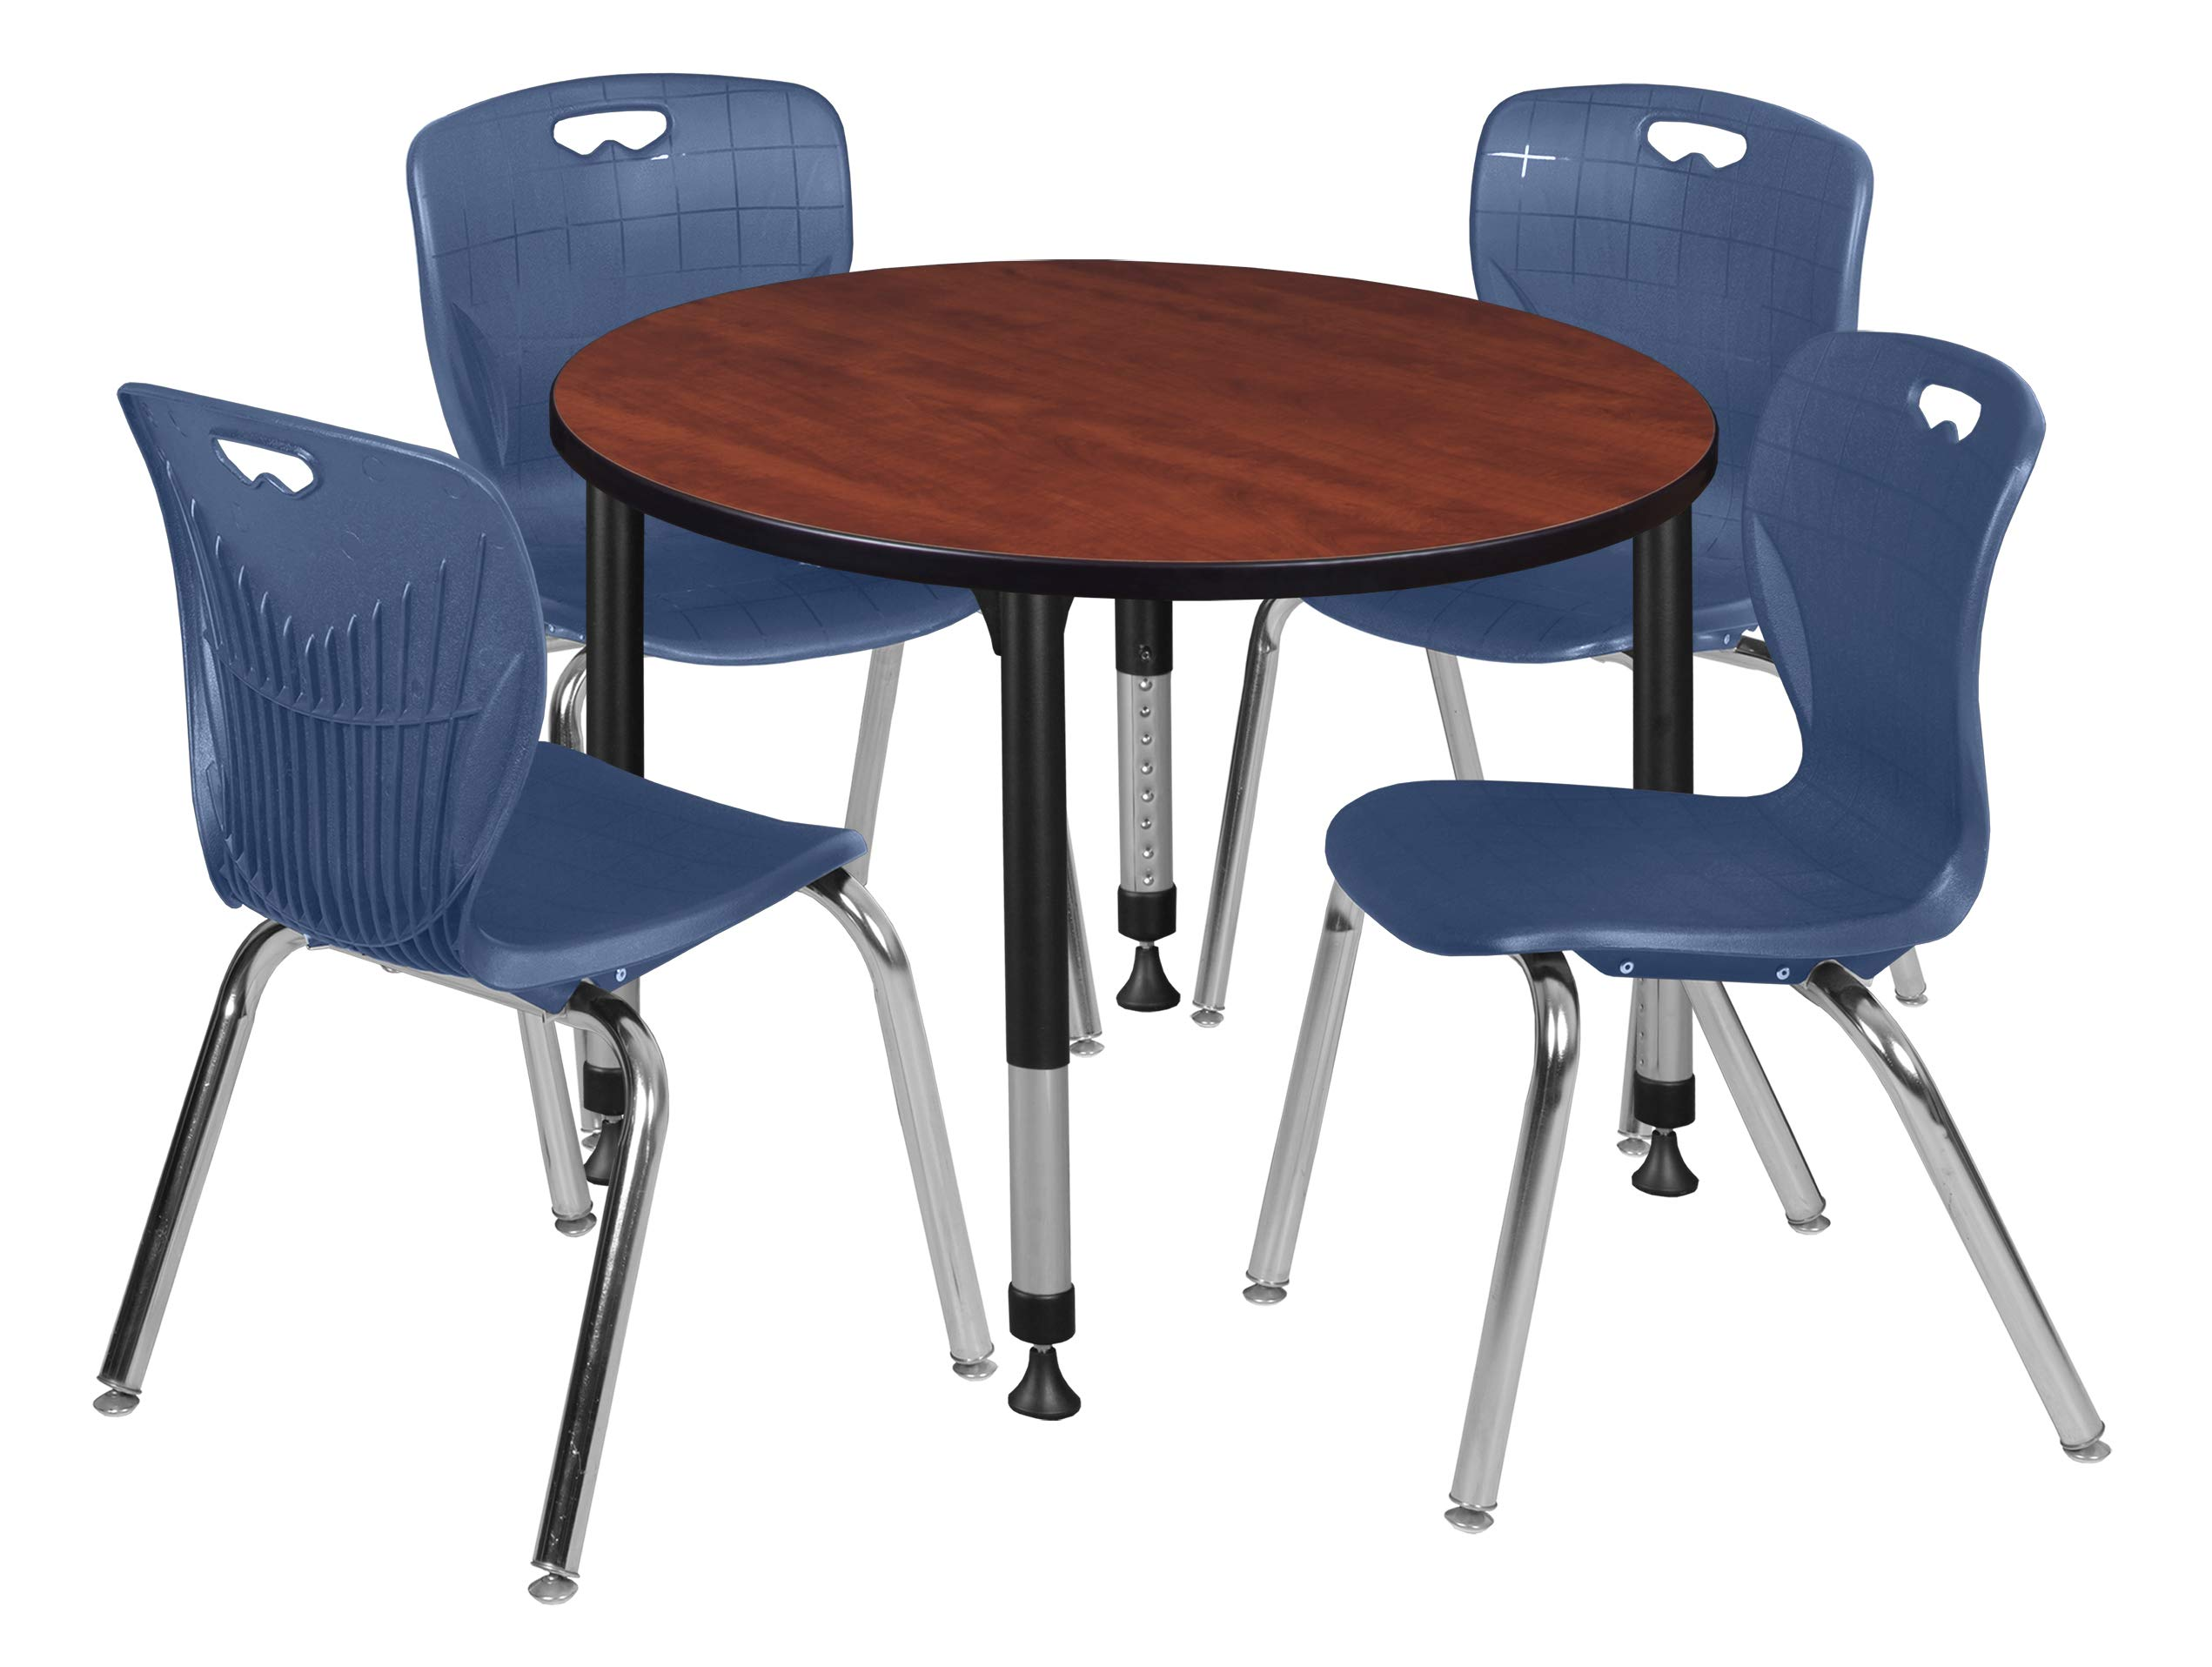 Regency TB42RNDCHAPBK40NV Kee Height Adjustable Classroom Table Set with Four 18'' Andy Chairs 42'' Cherry/Navy Blue